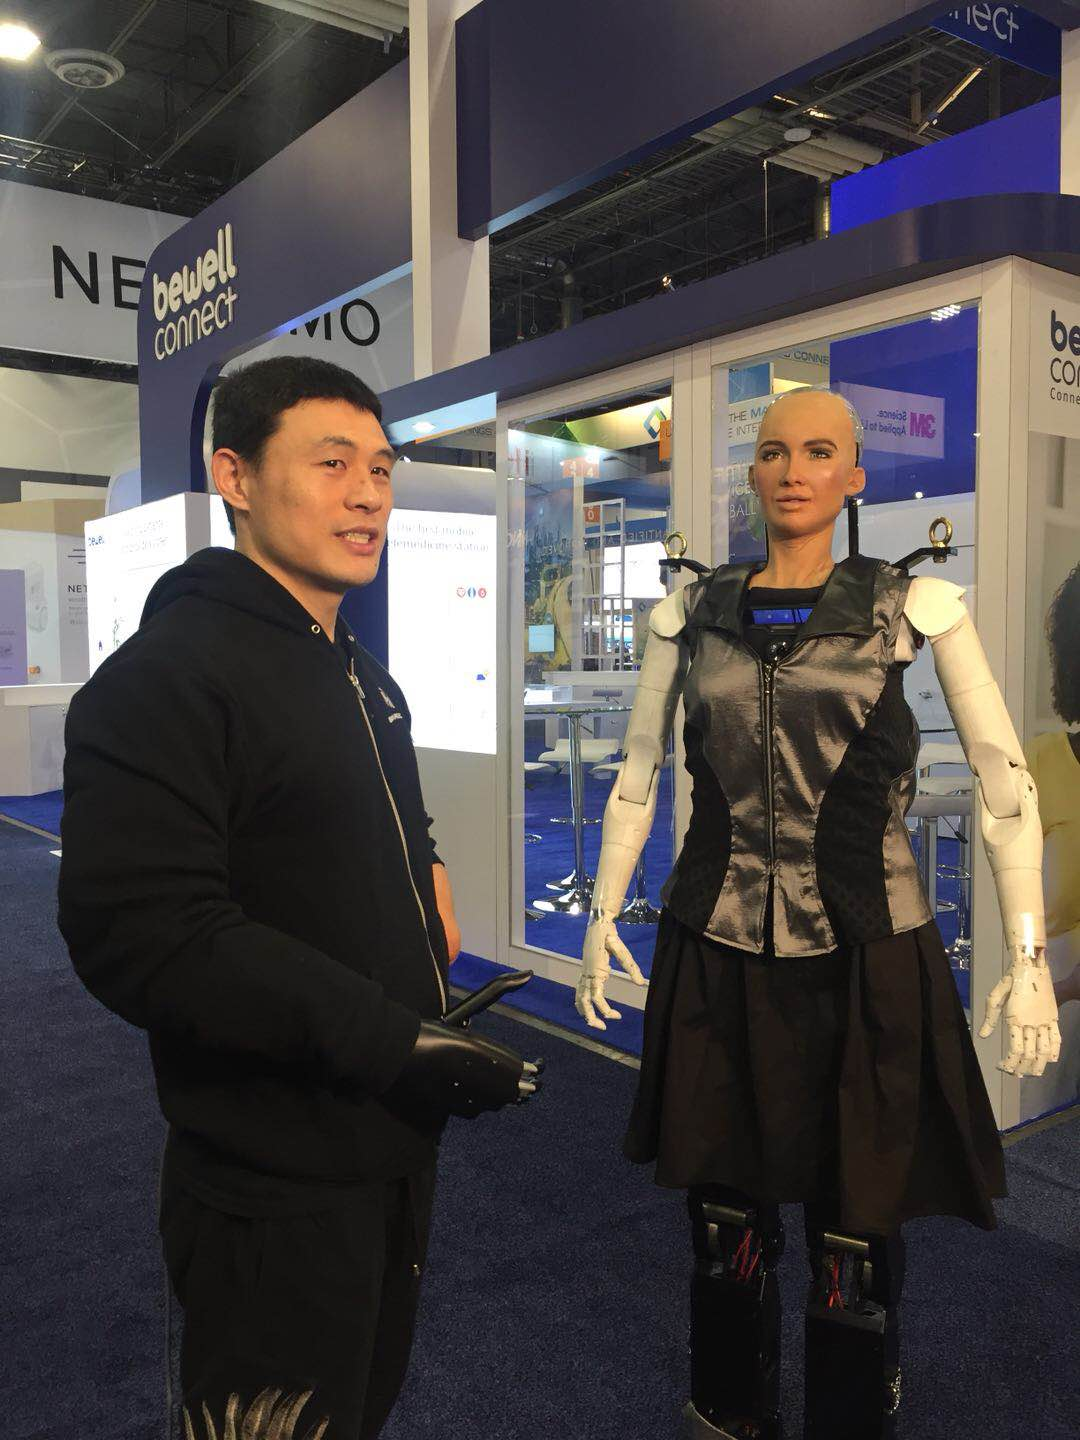 Mind Controlled Industrial Robot Brainco Debuts Cutting